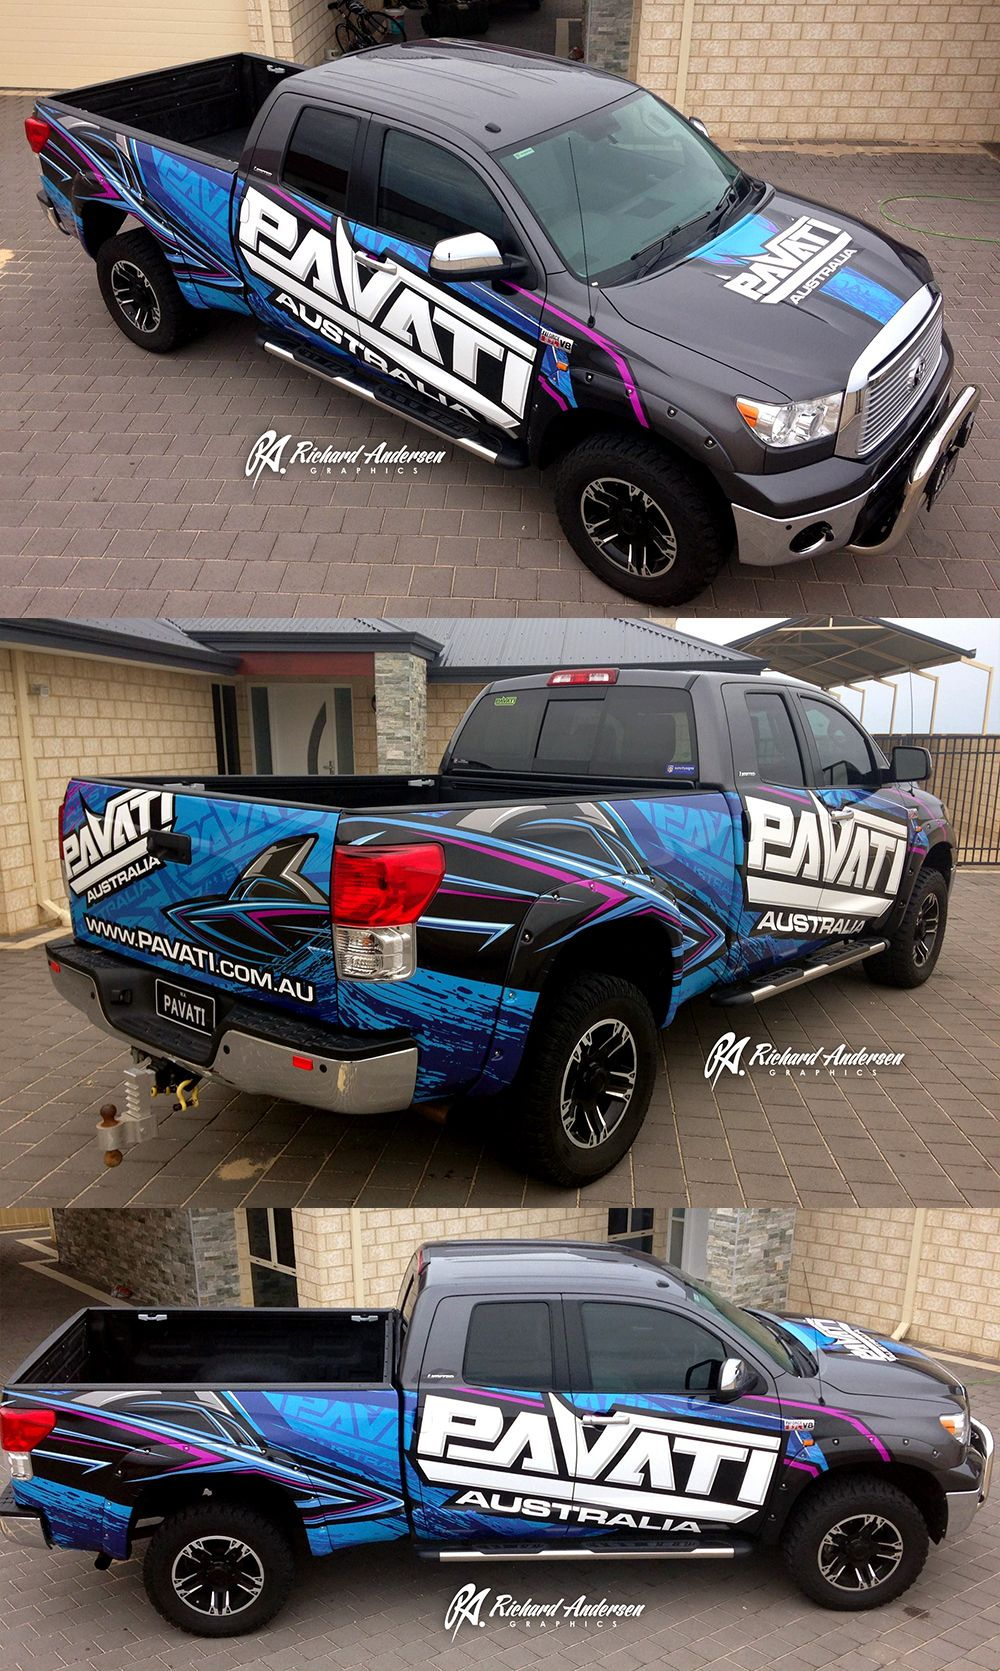 One Of My Wrap Designs Ragraphics Carbonmade Com Car Wrap Vehicle Signage Car Lettering [ 1671 x 1000 Pixel ]